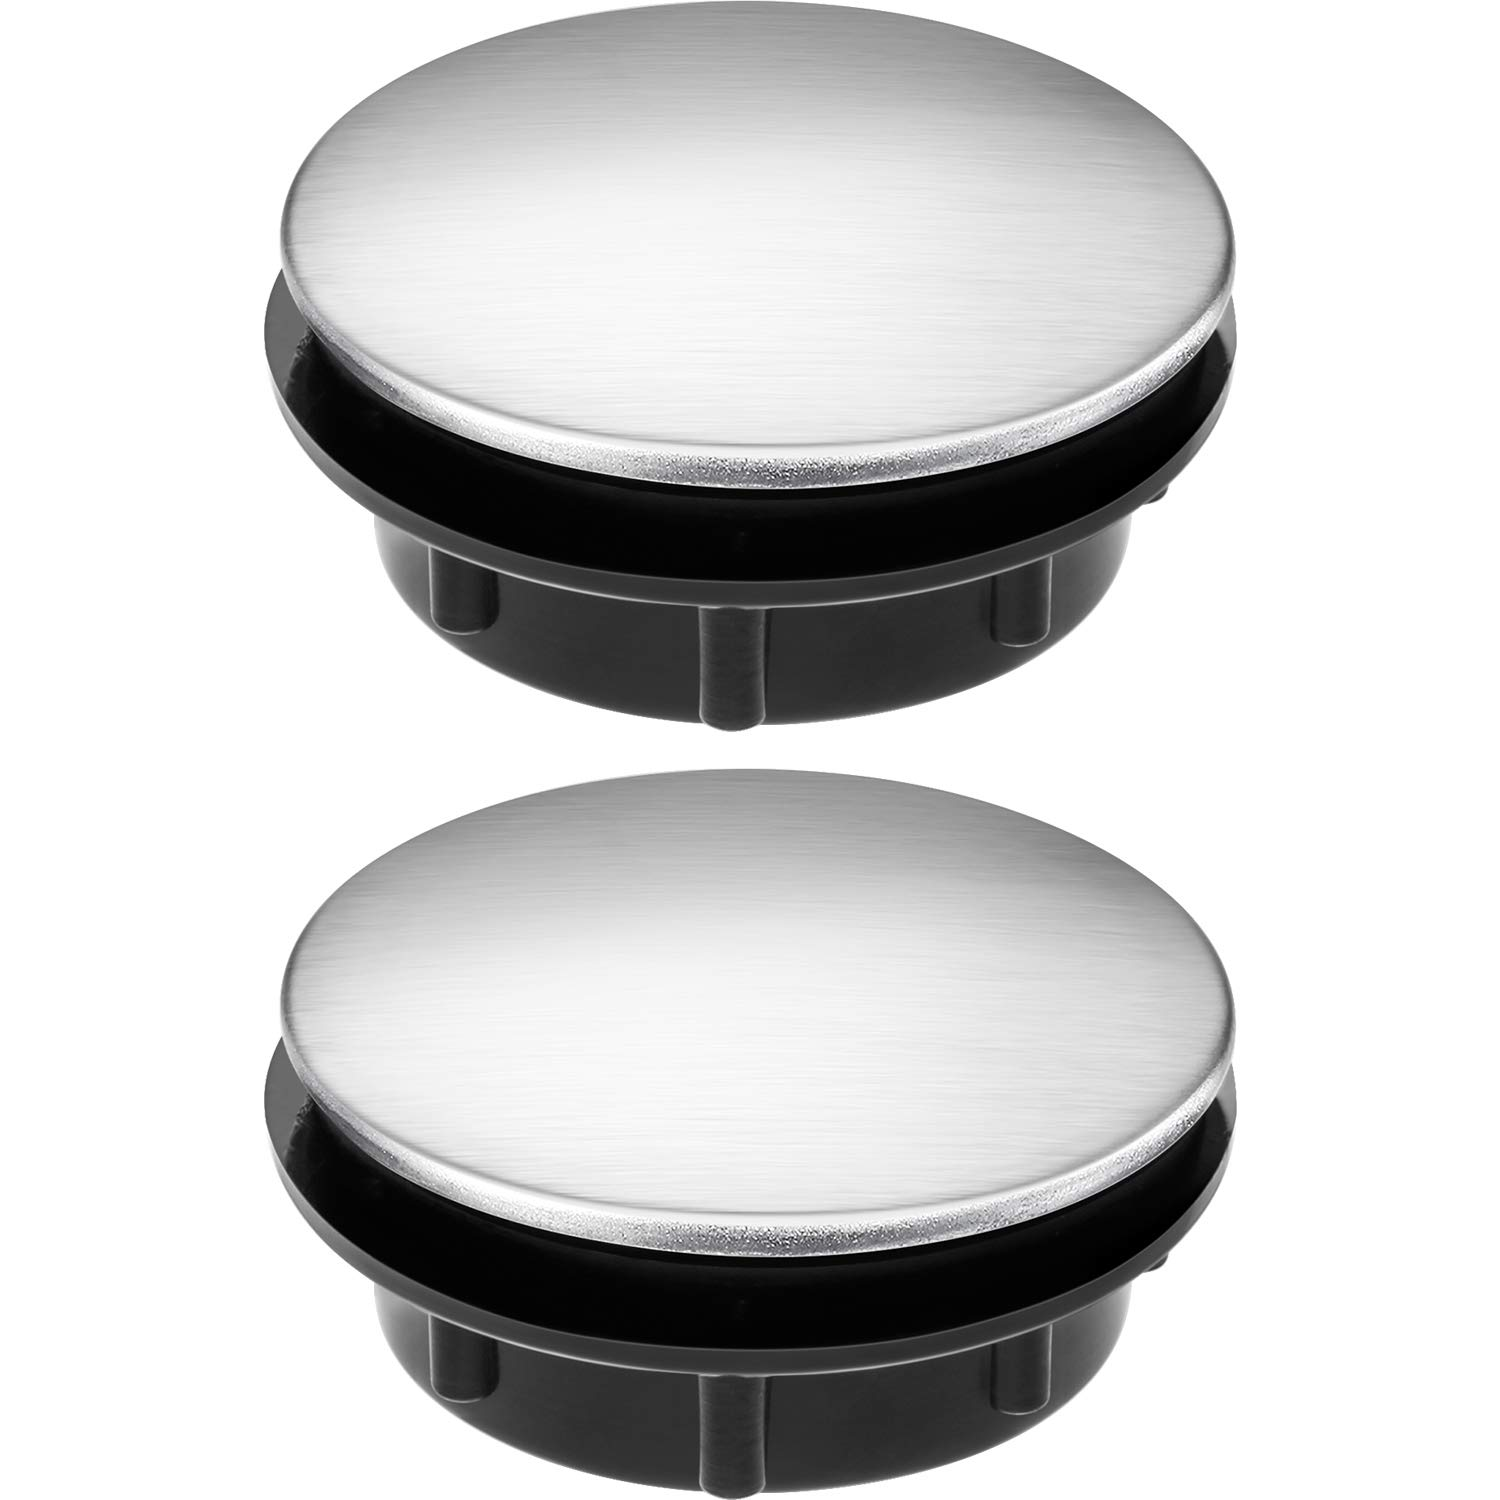 Tatuo Sink Tap Hole Cover Kitchen Faucet Hole Cover Stainless Steel, 2 Packs (1.1 to 1.7 Inch in Diameter)